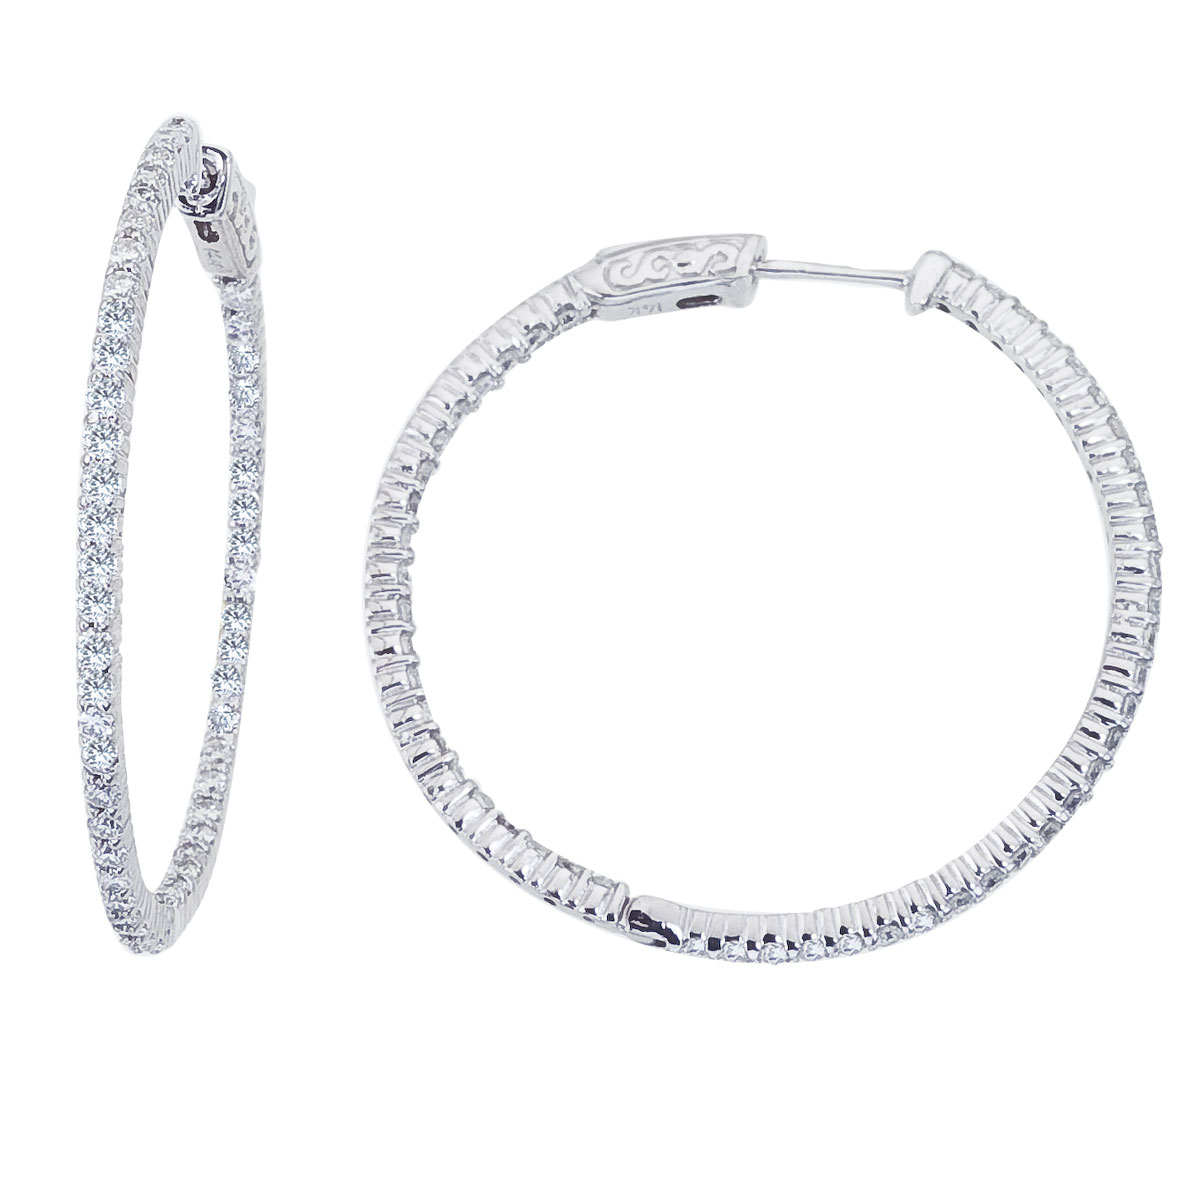 These 35x35 mm patented secure lock inside-outside diamond hoop earrings feature 2 carats of stun...